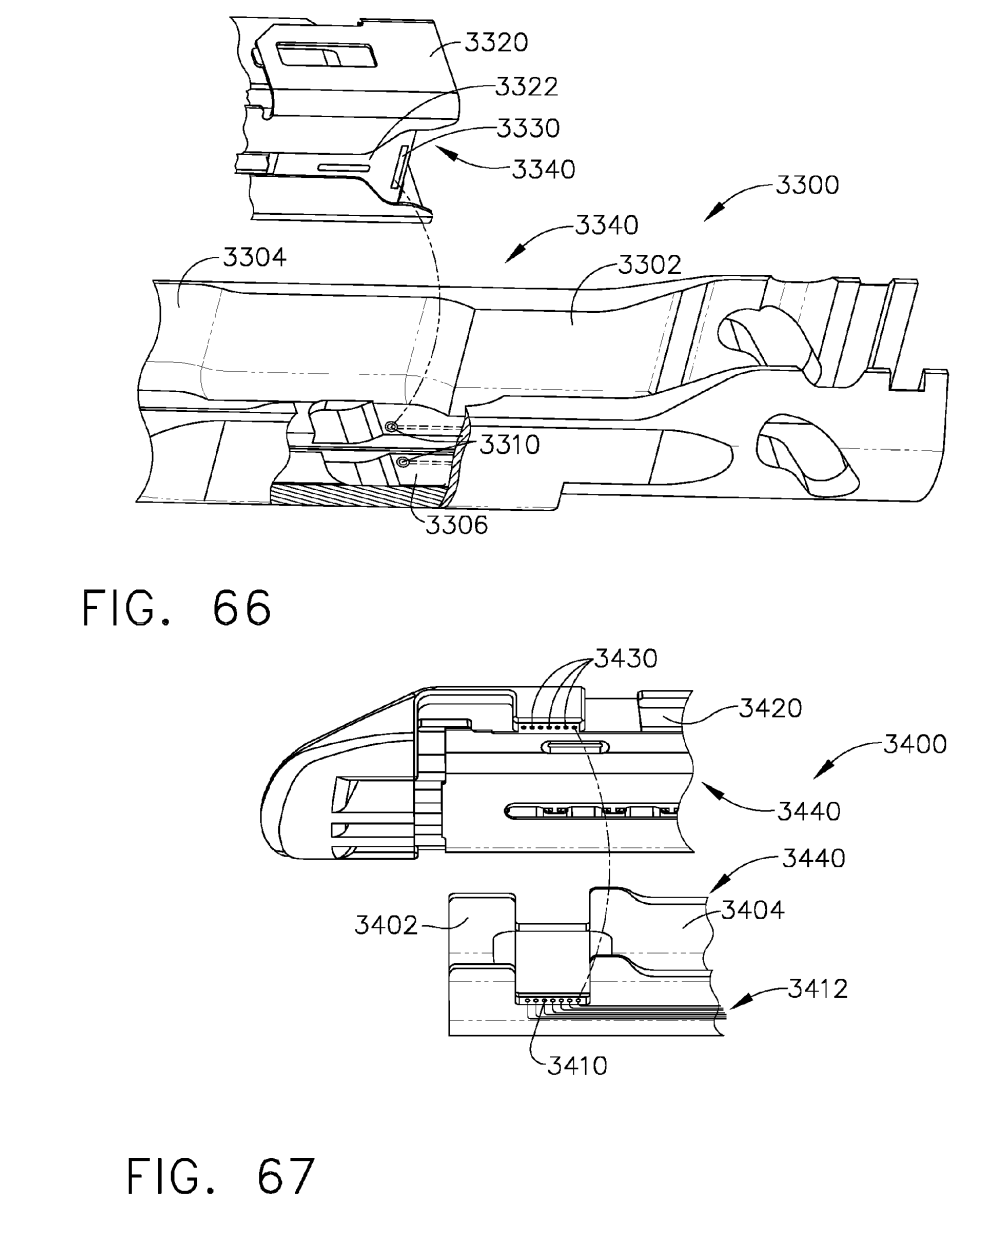 medium resolution of ep2923657a1 modular powered surgical instrument with detachable shaft assemblies google patents